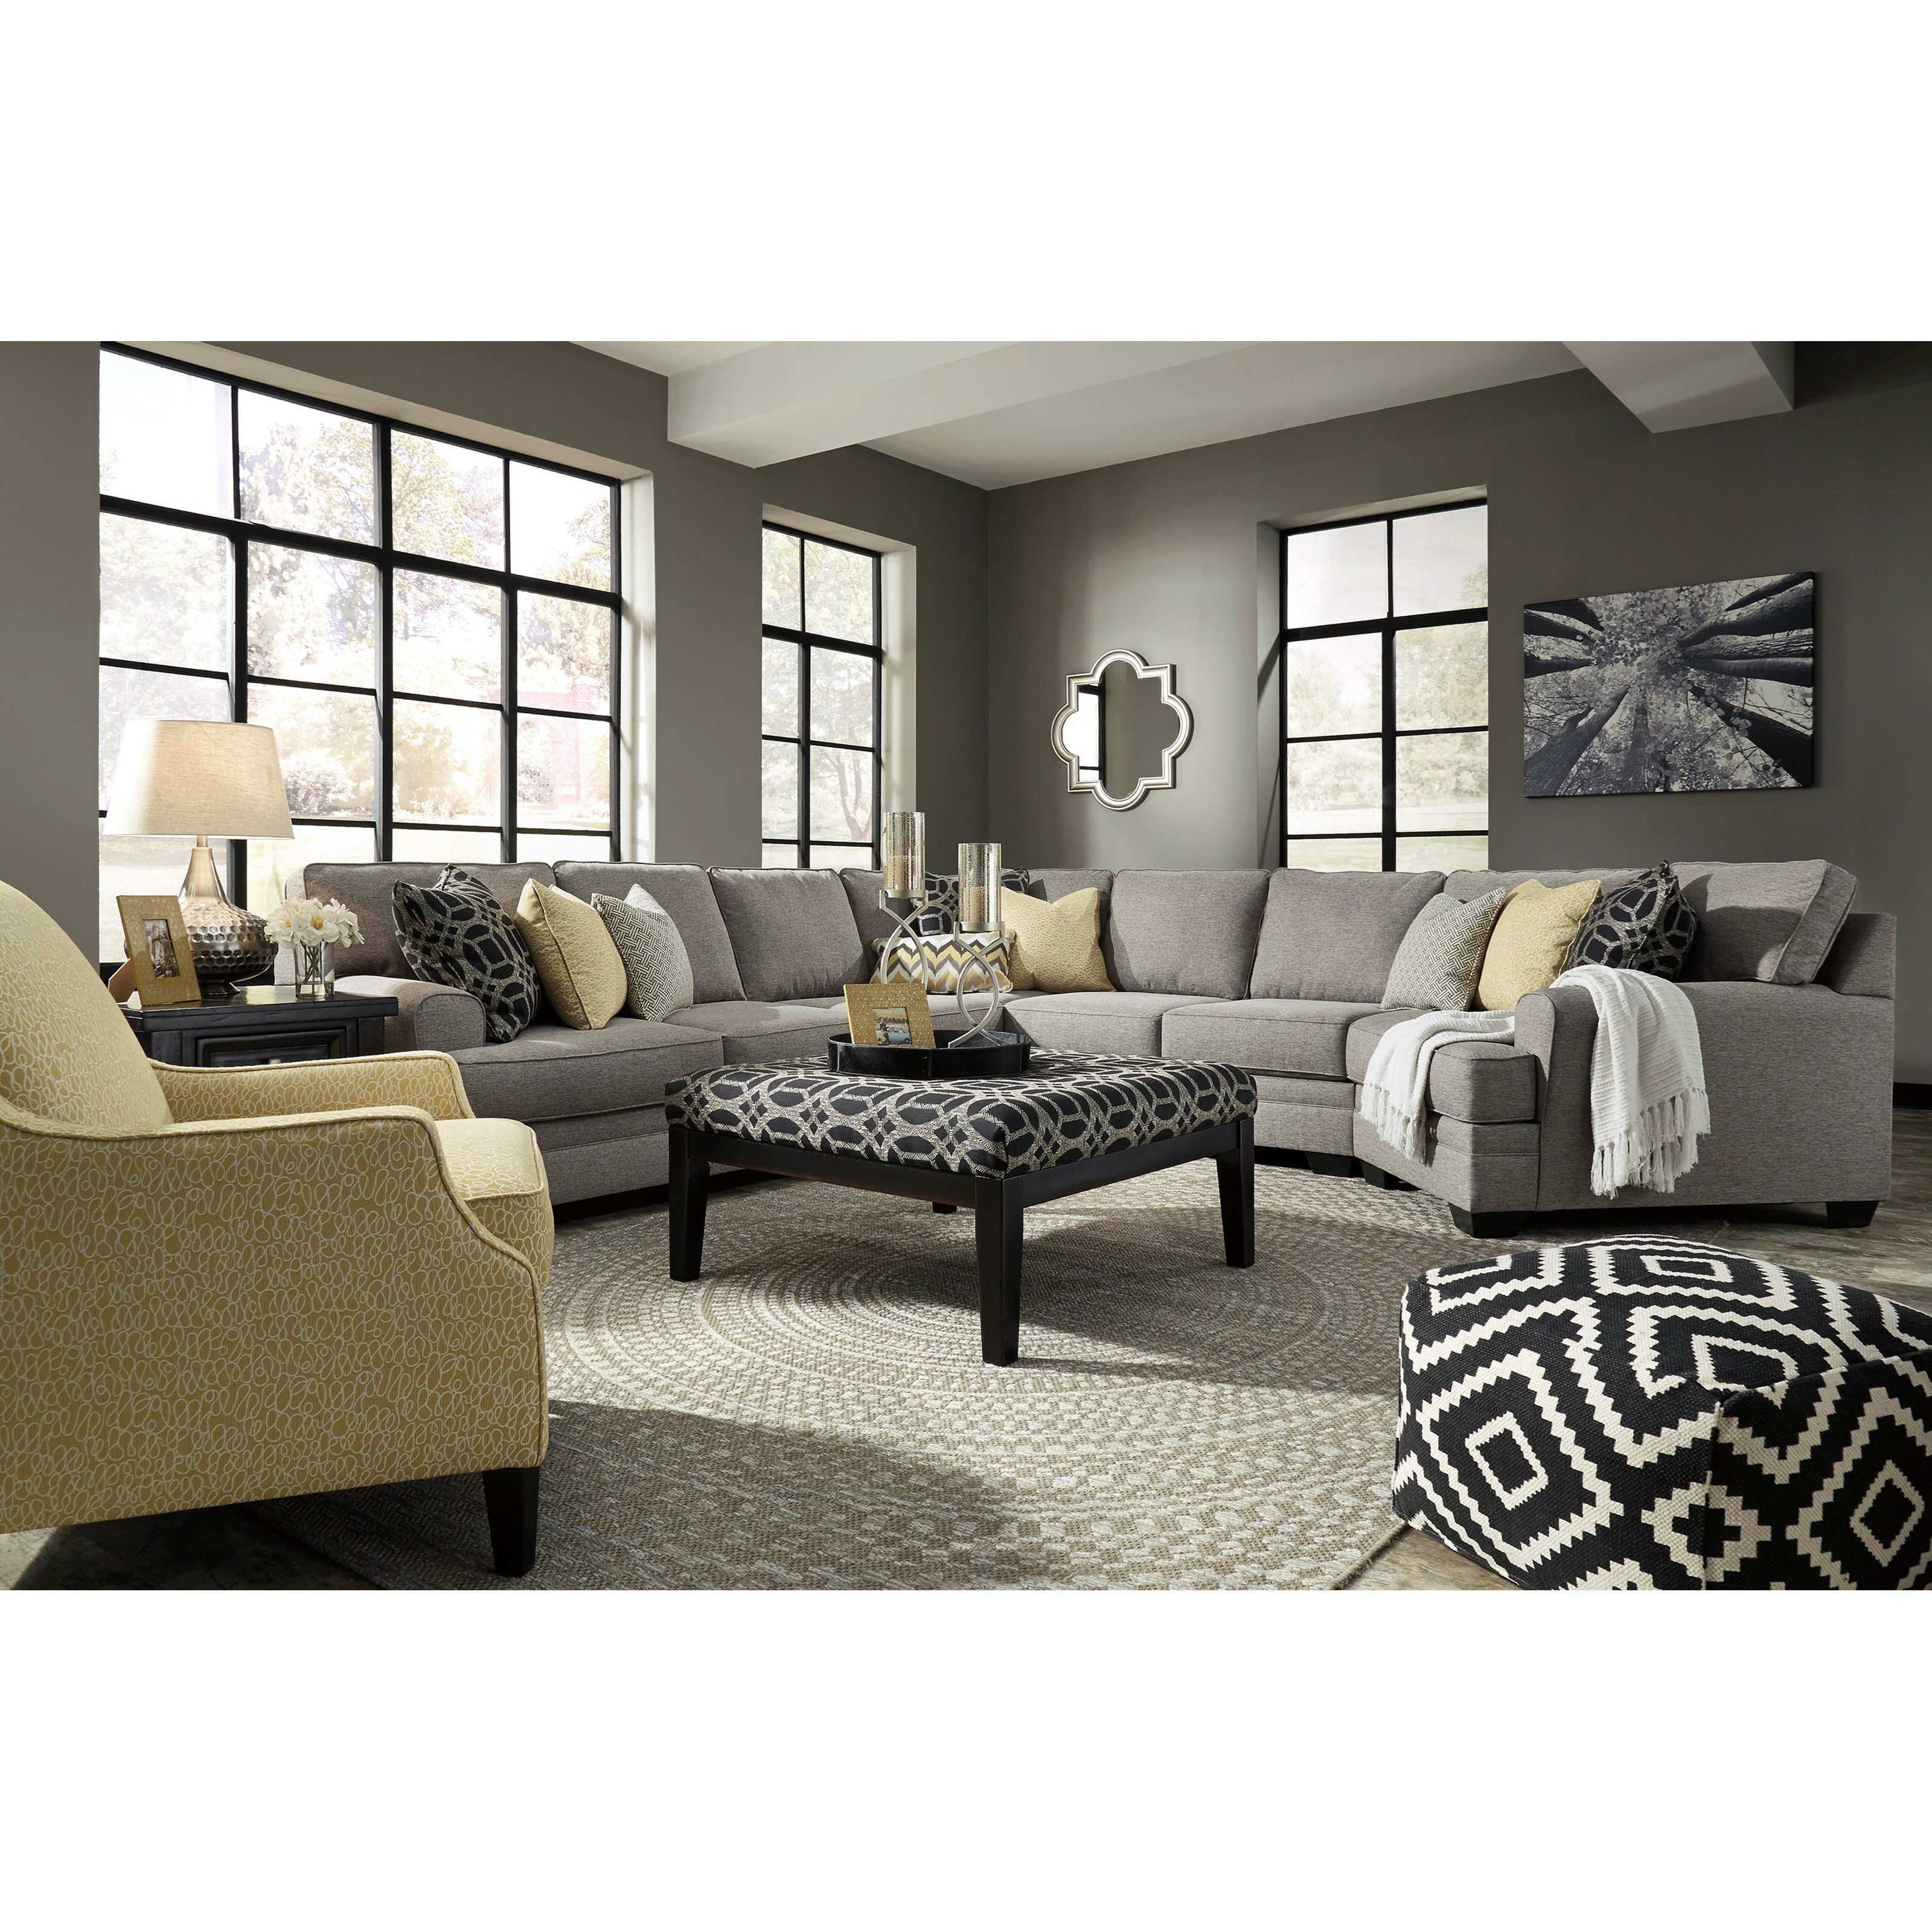 Benchcraft Cresson Stationary Living Room Group - Item Number: 54907 Living Room Group 20